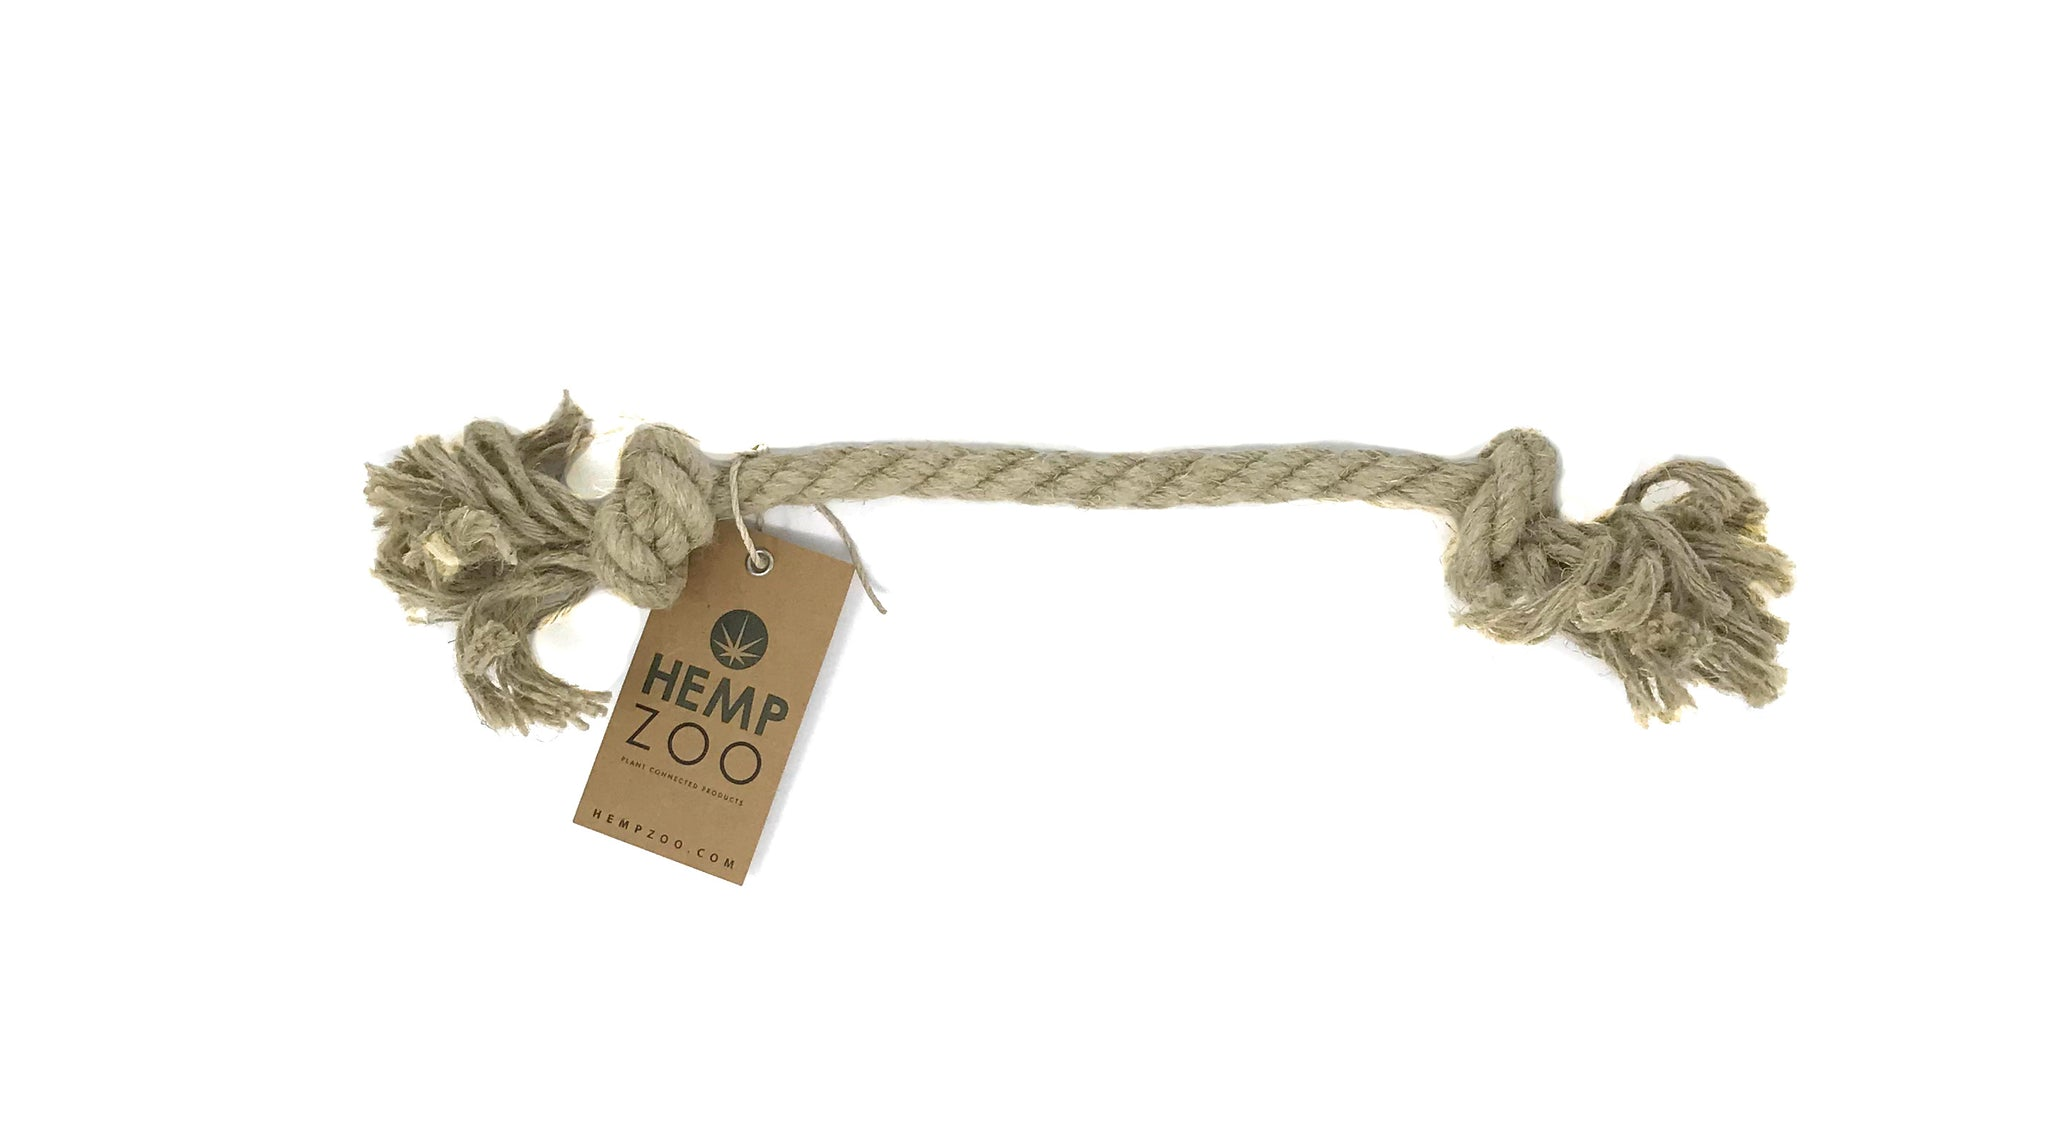 HEMP ROPE DOG TOY - HEMPZOO Sustainable organic hemp cannabis clothing hats accessories